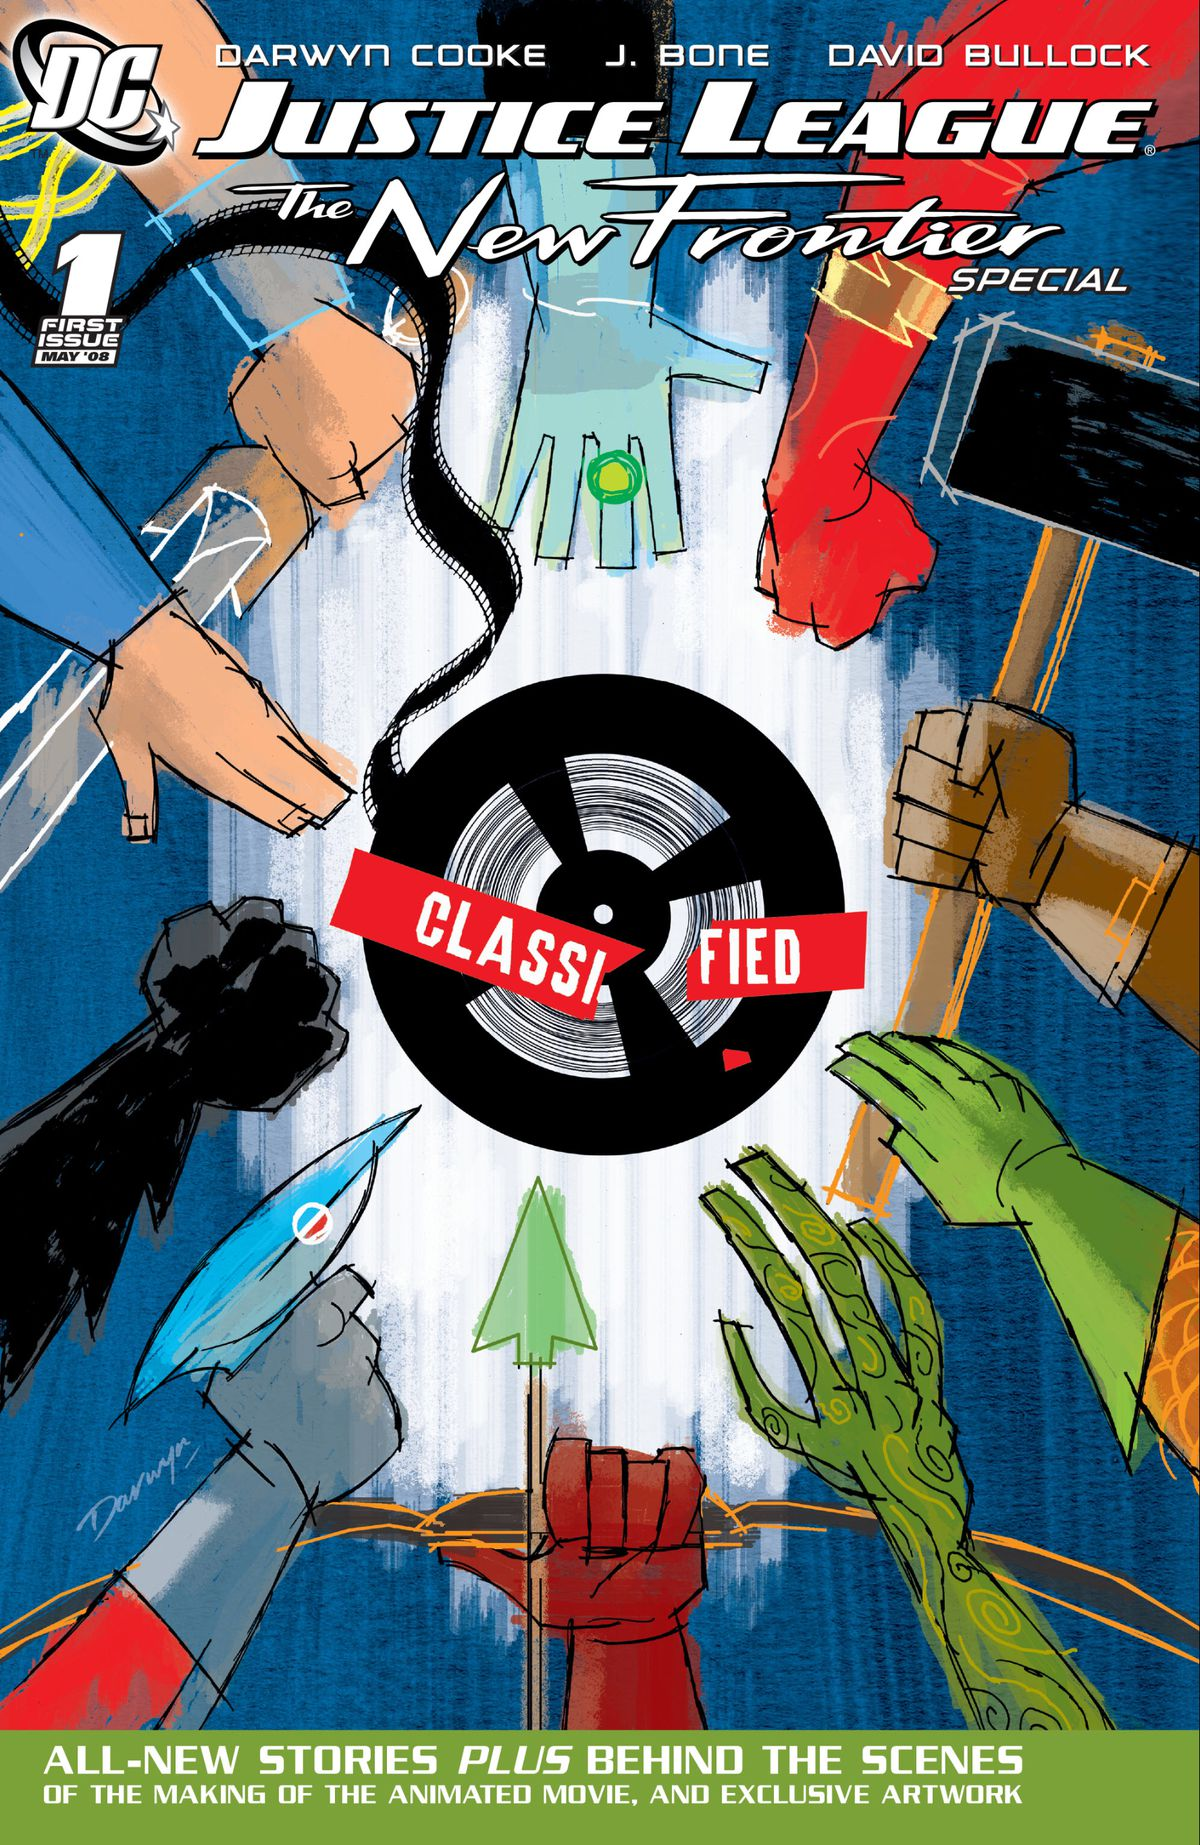 The hands and armaments of the Justice League reach inward for a film reel labeled CLASSIFIED on the cover of Justice League: The New Frontier #1, DC Comics (2004).